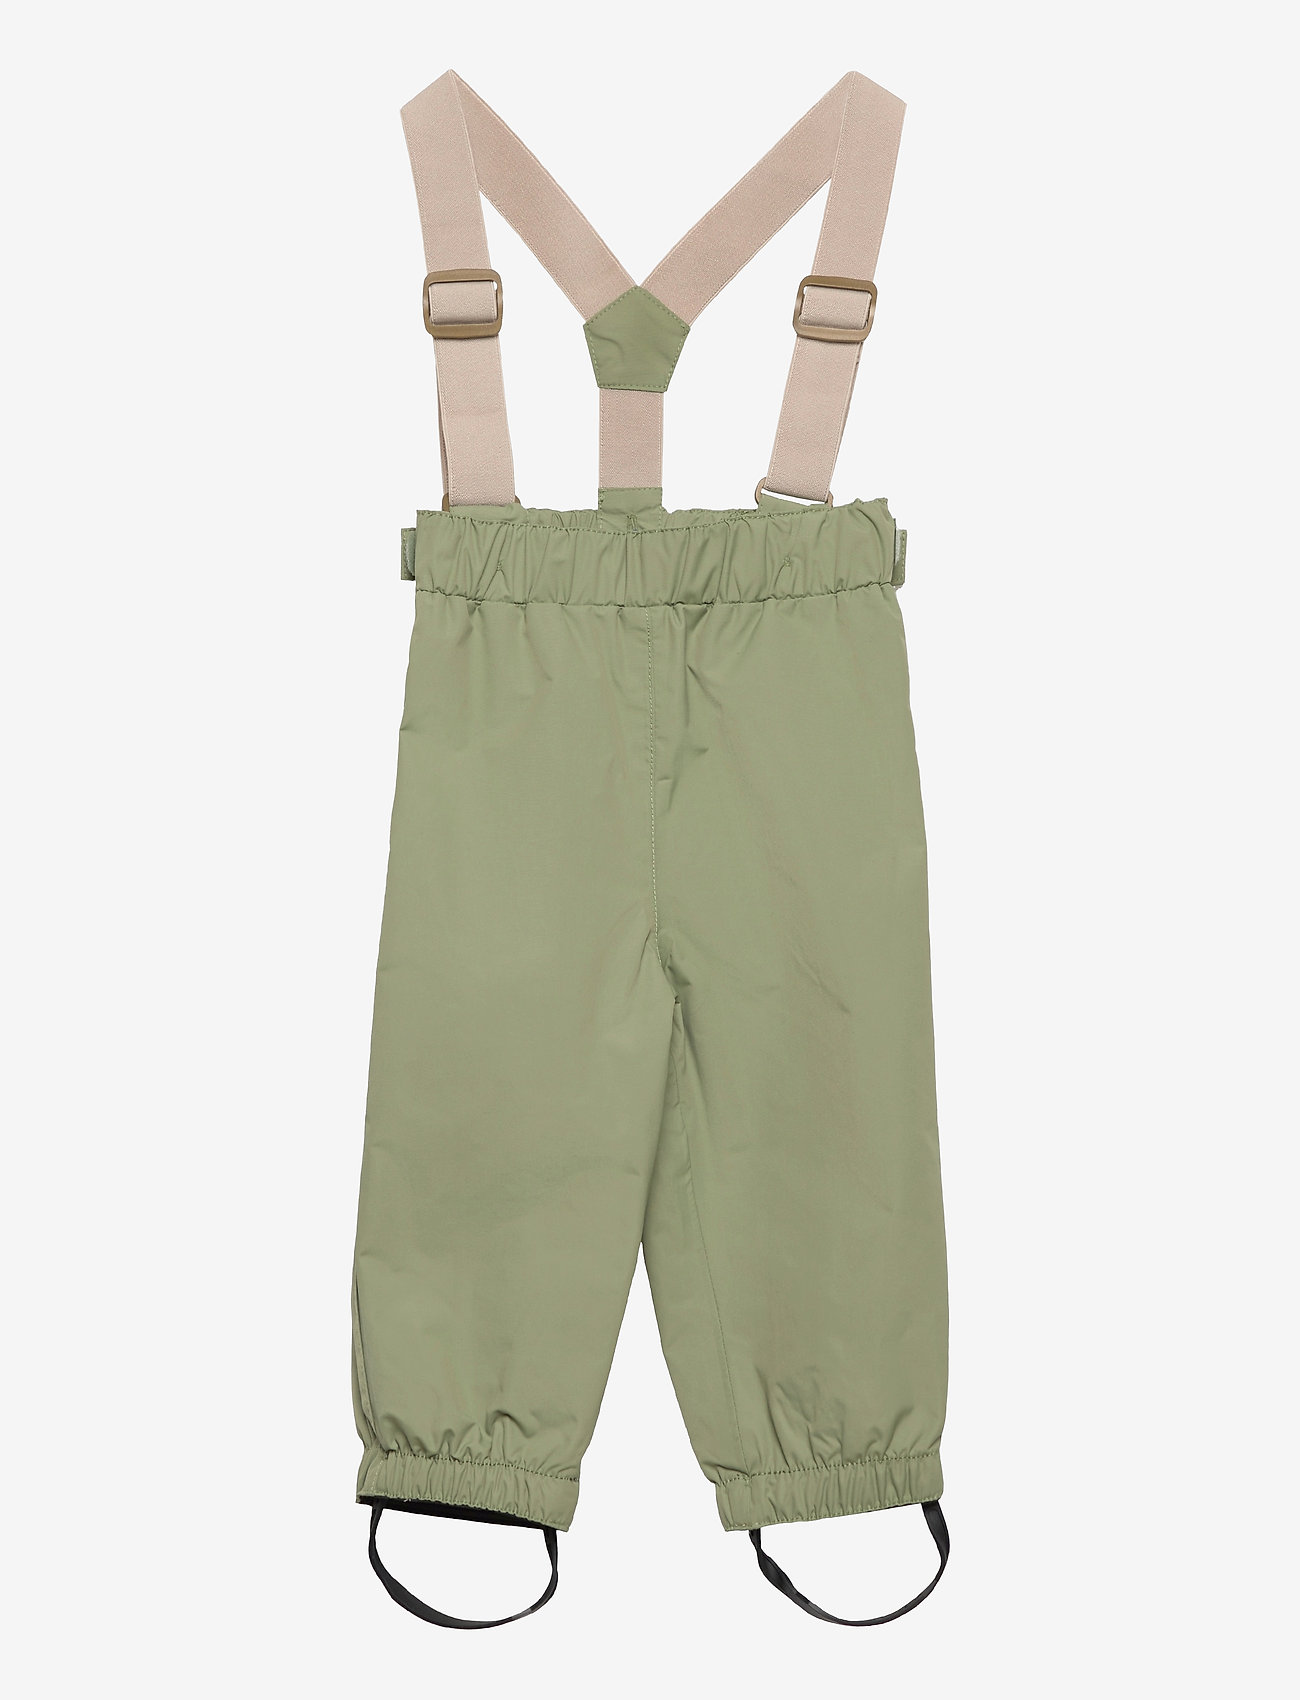 Mini A Ture - Wilans Suspenders Pants, BM - outerwear - oil green - 0